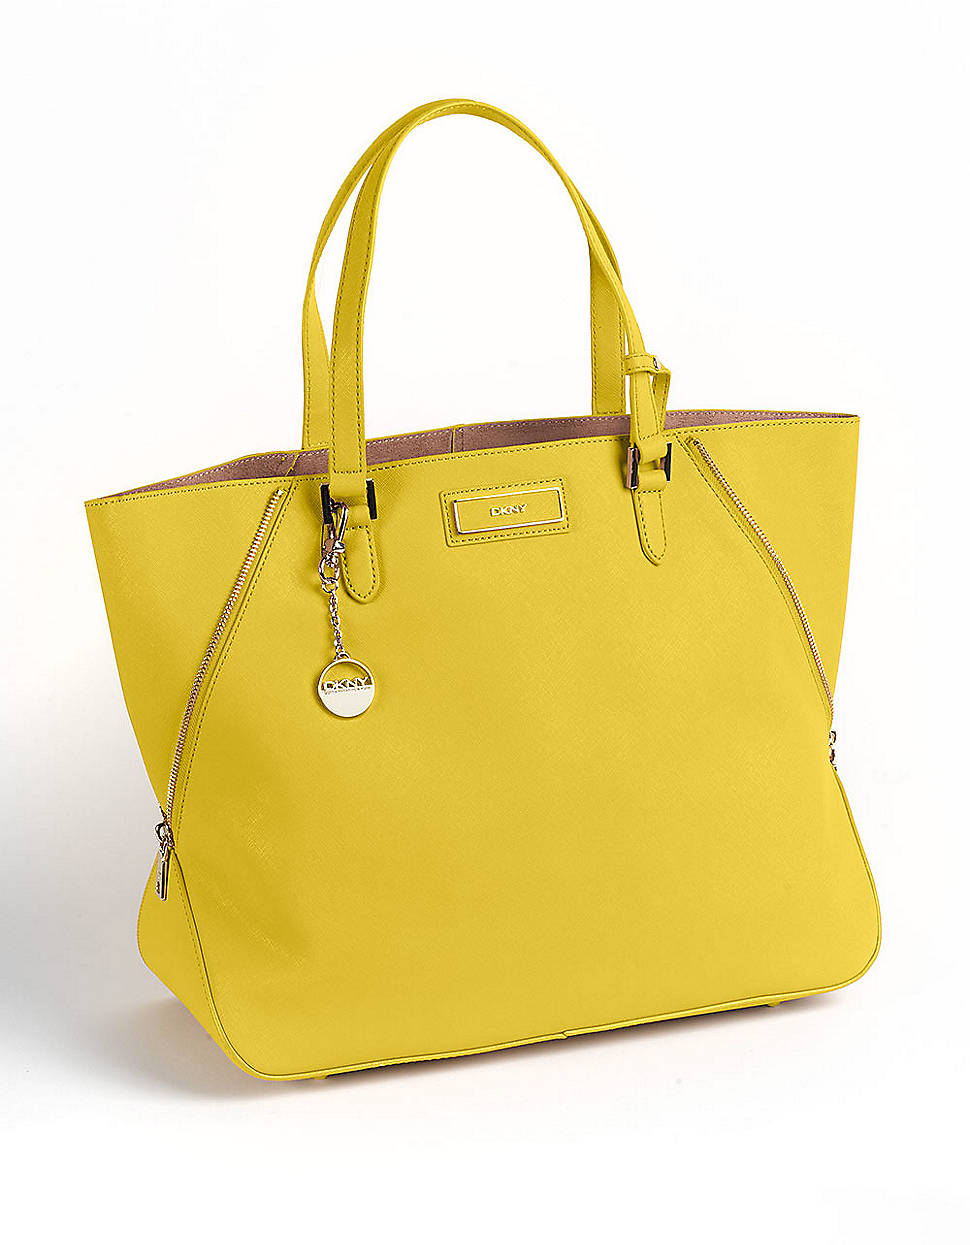 Dkny Leather Tote Bag In Yellow Lyst